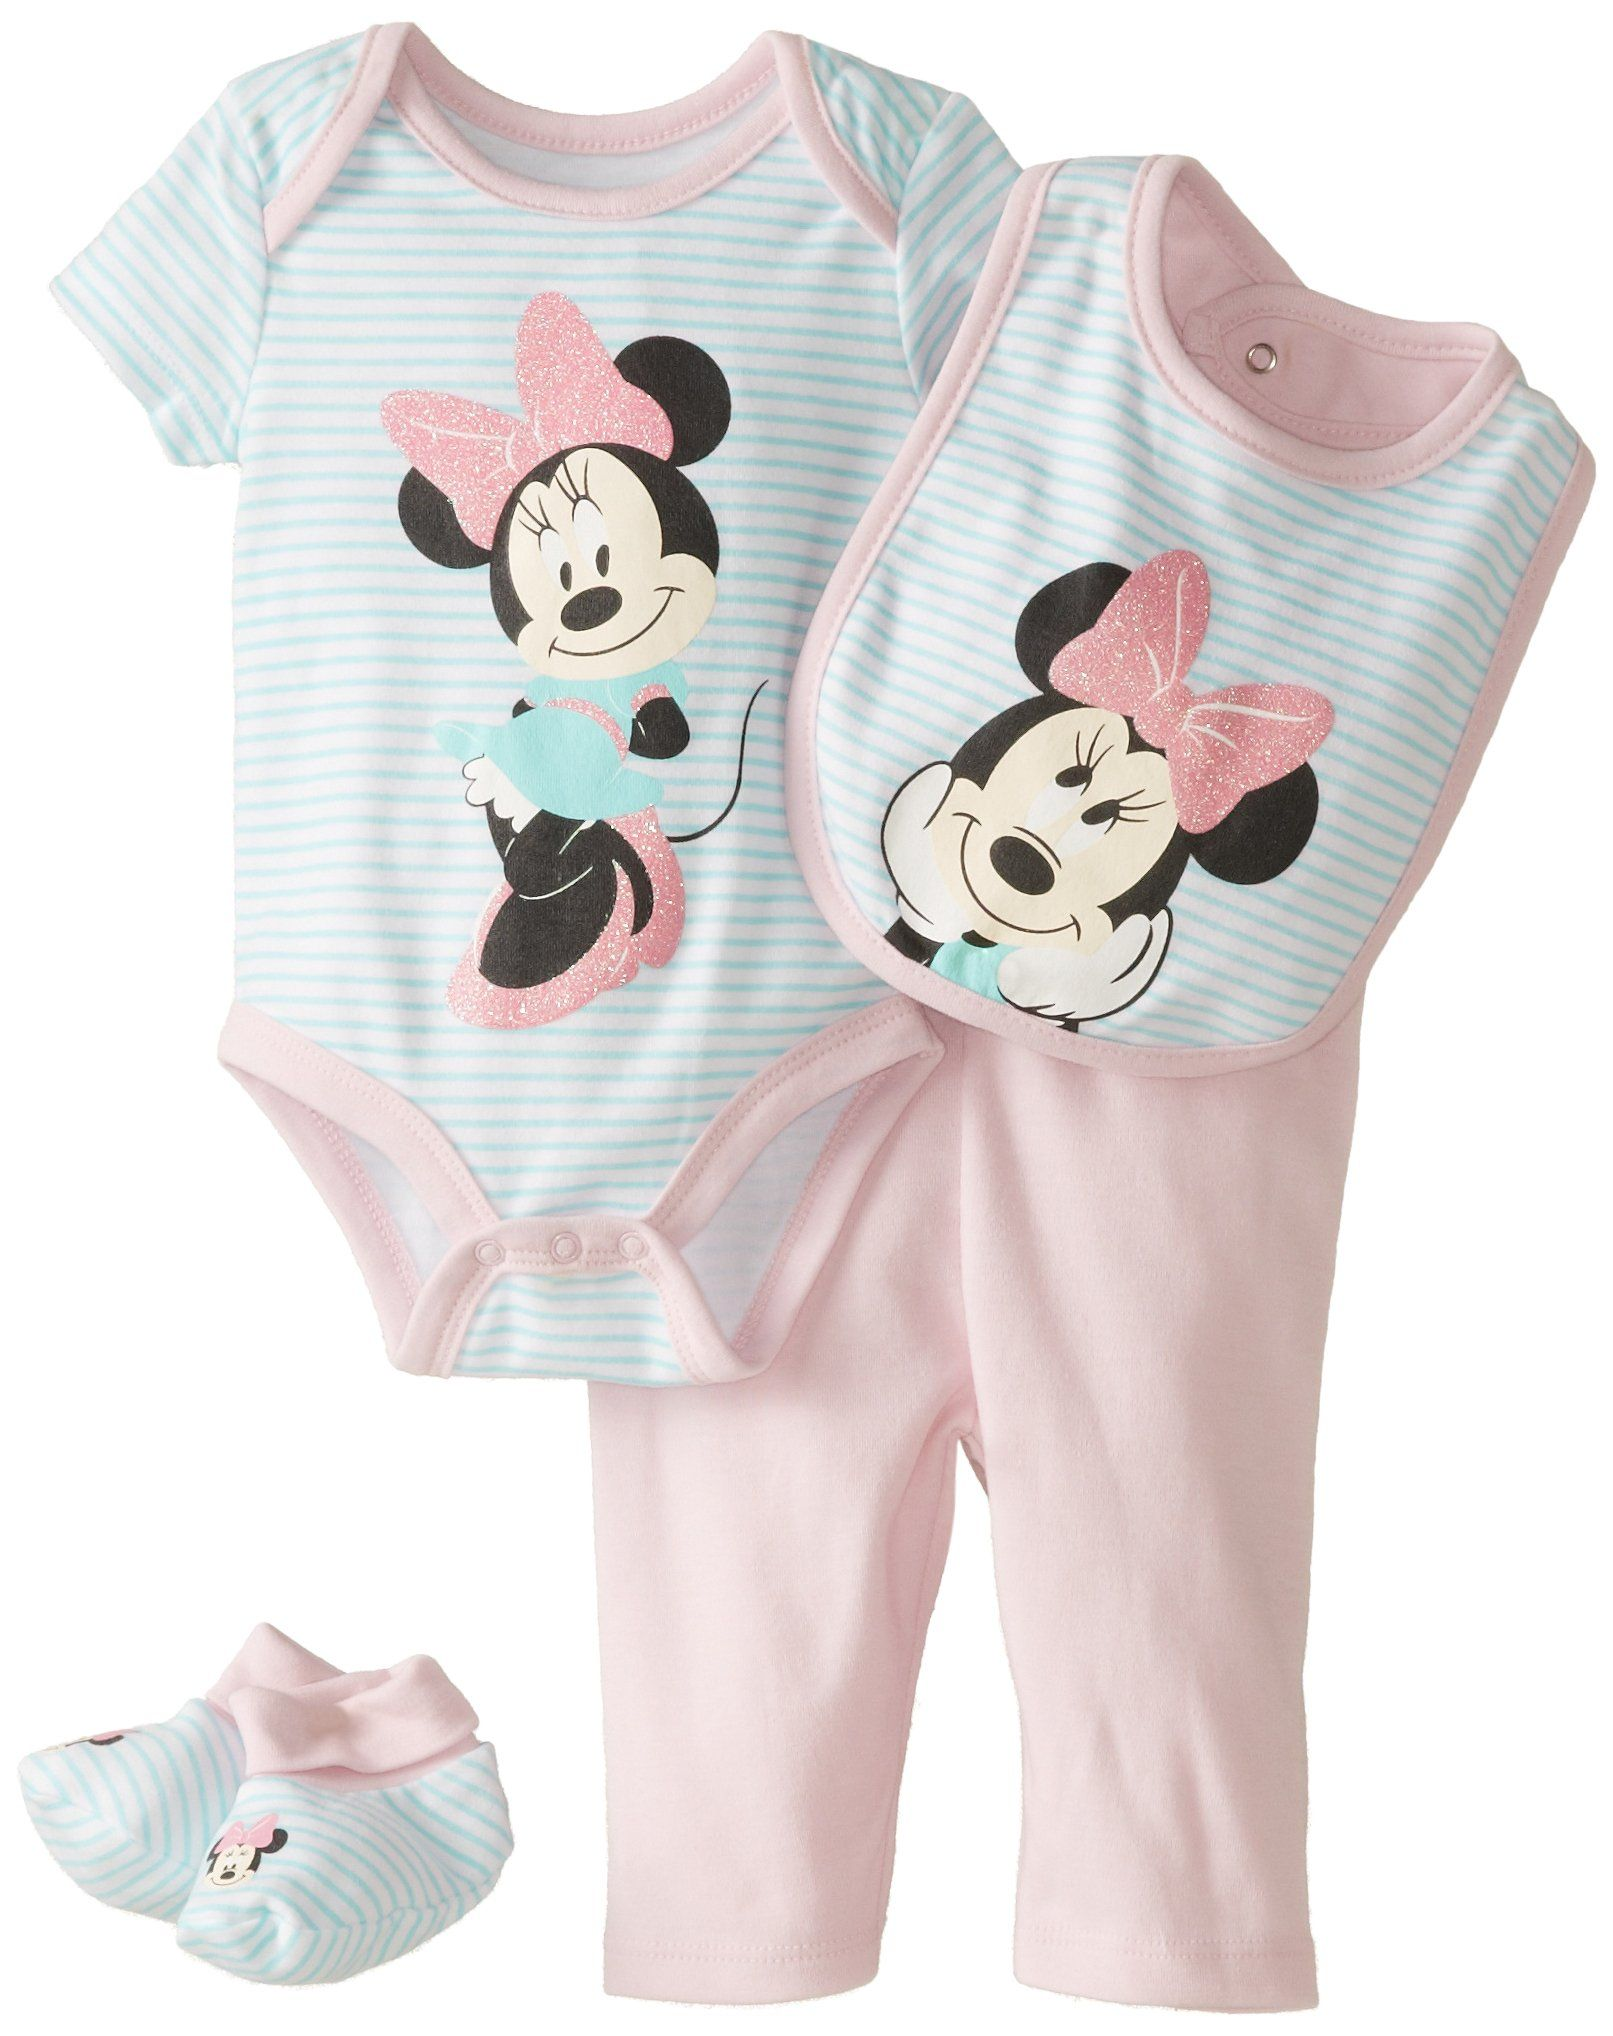 5aa3ce31e34 Disney Baby Girls' Minnie Mouse Girls 4 Piece Set, Multi, 0-3 Months ...